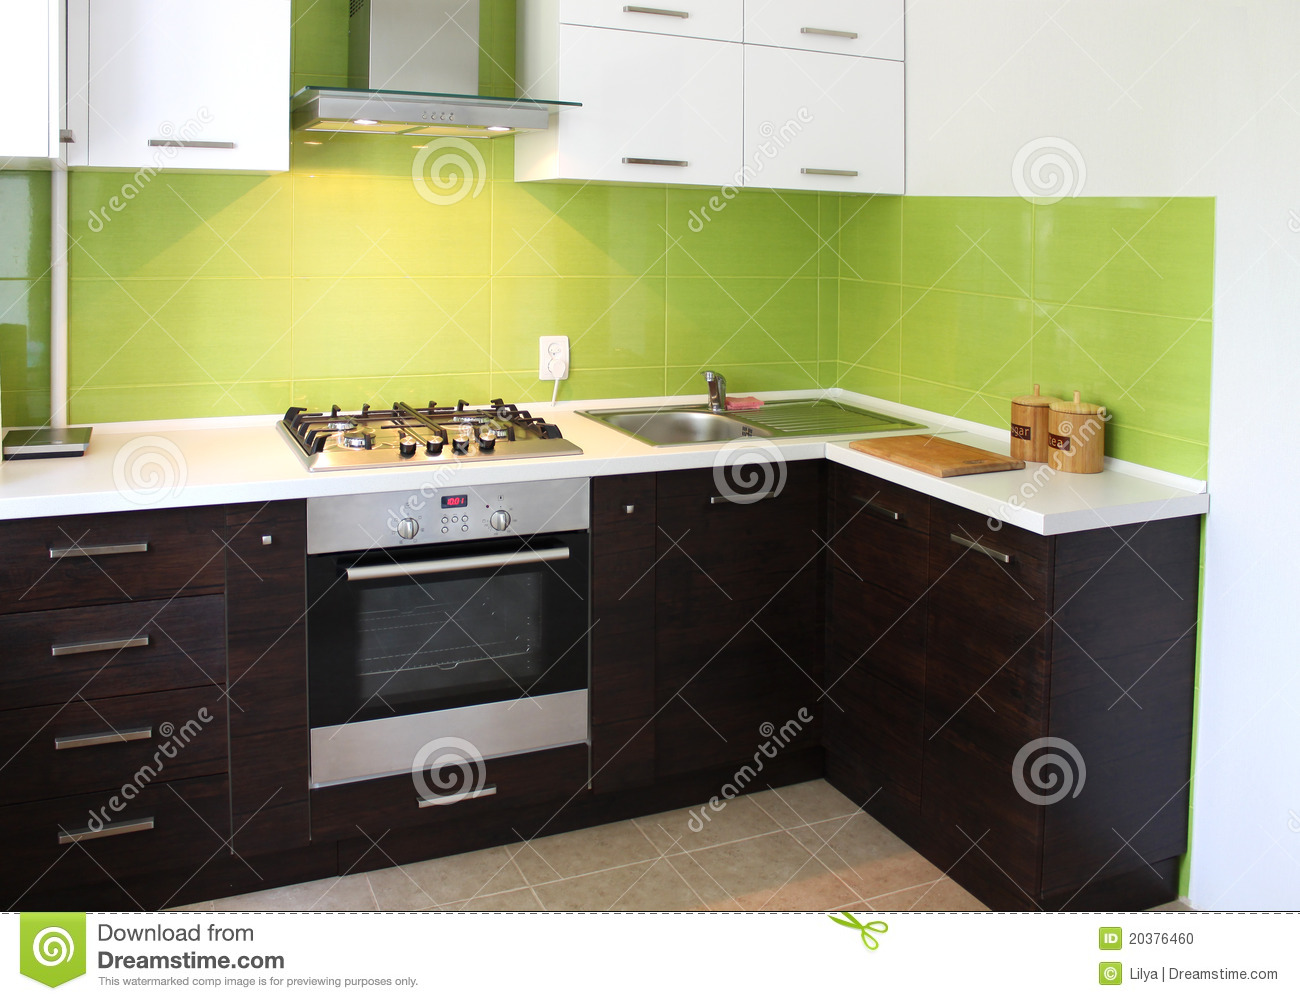 Download Kitchen Design